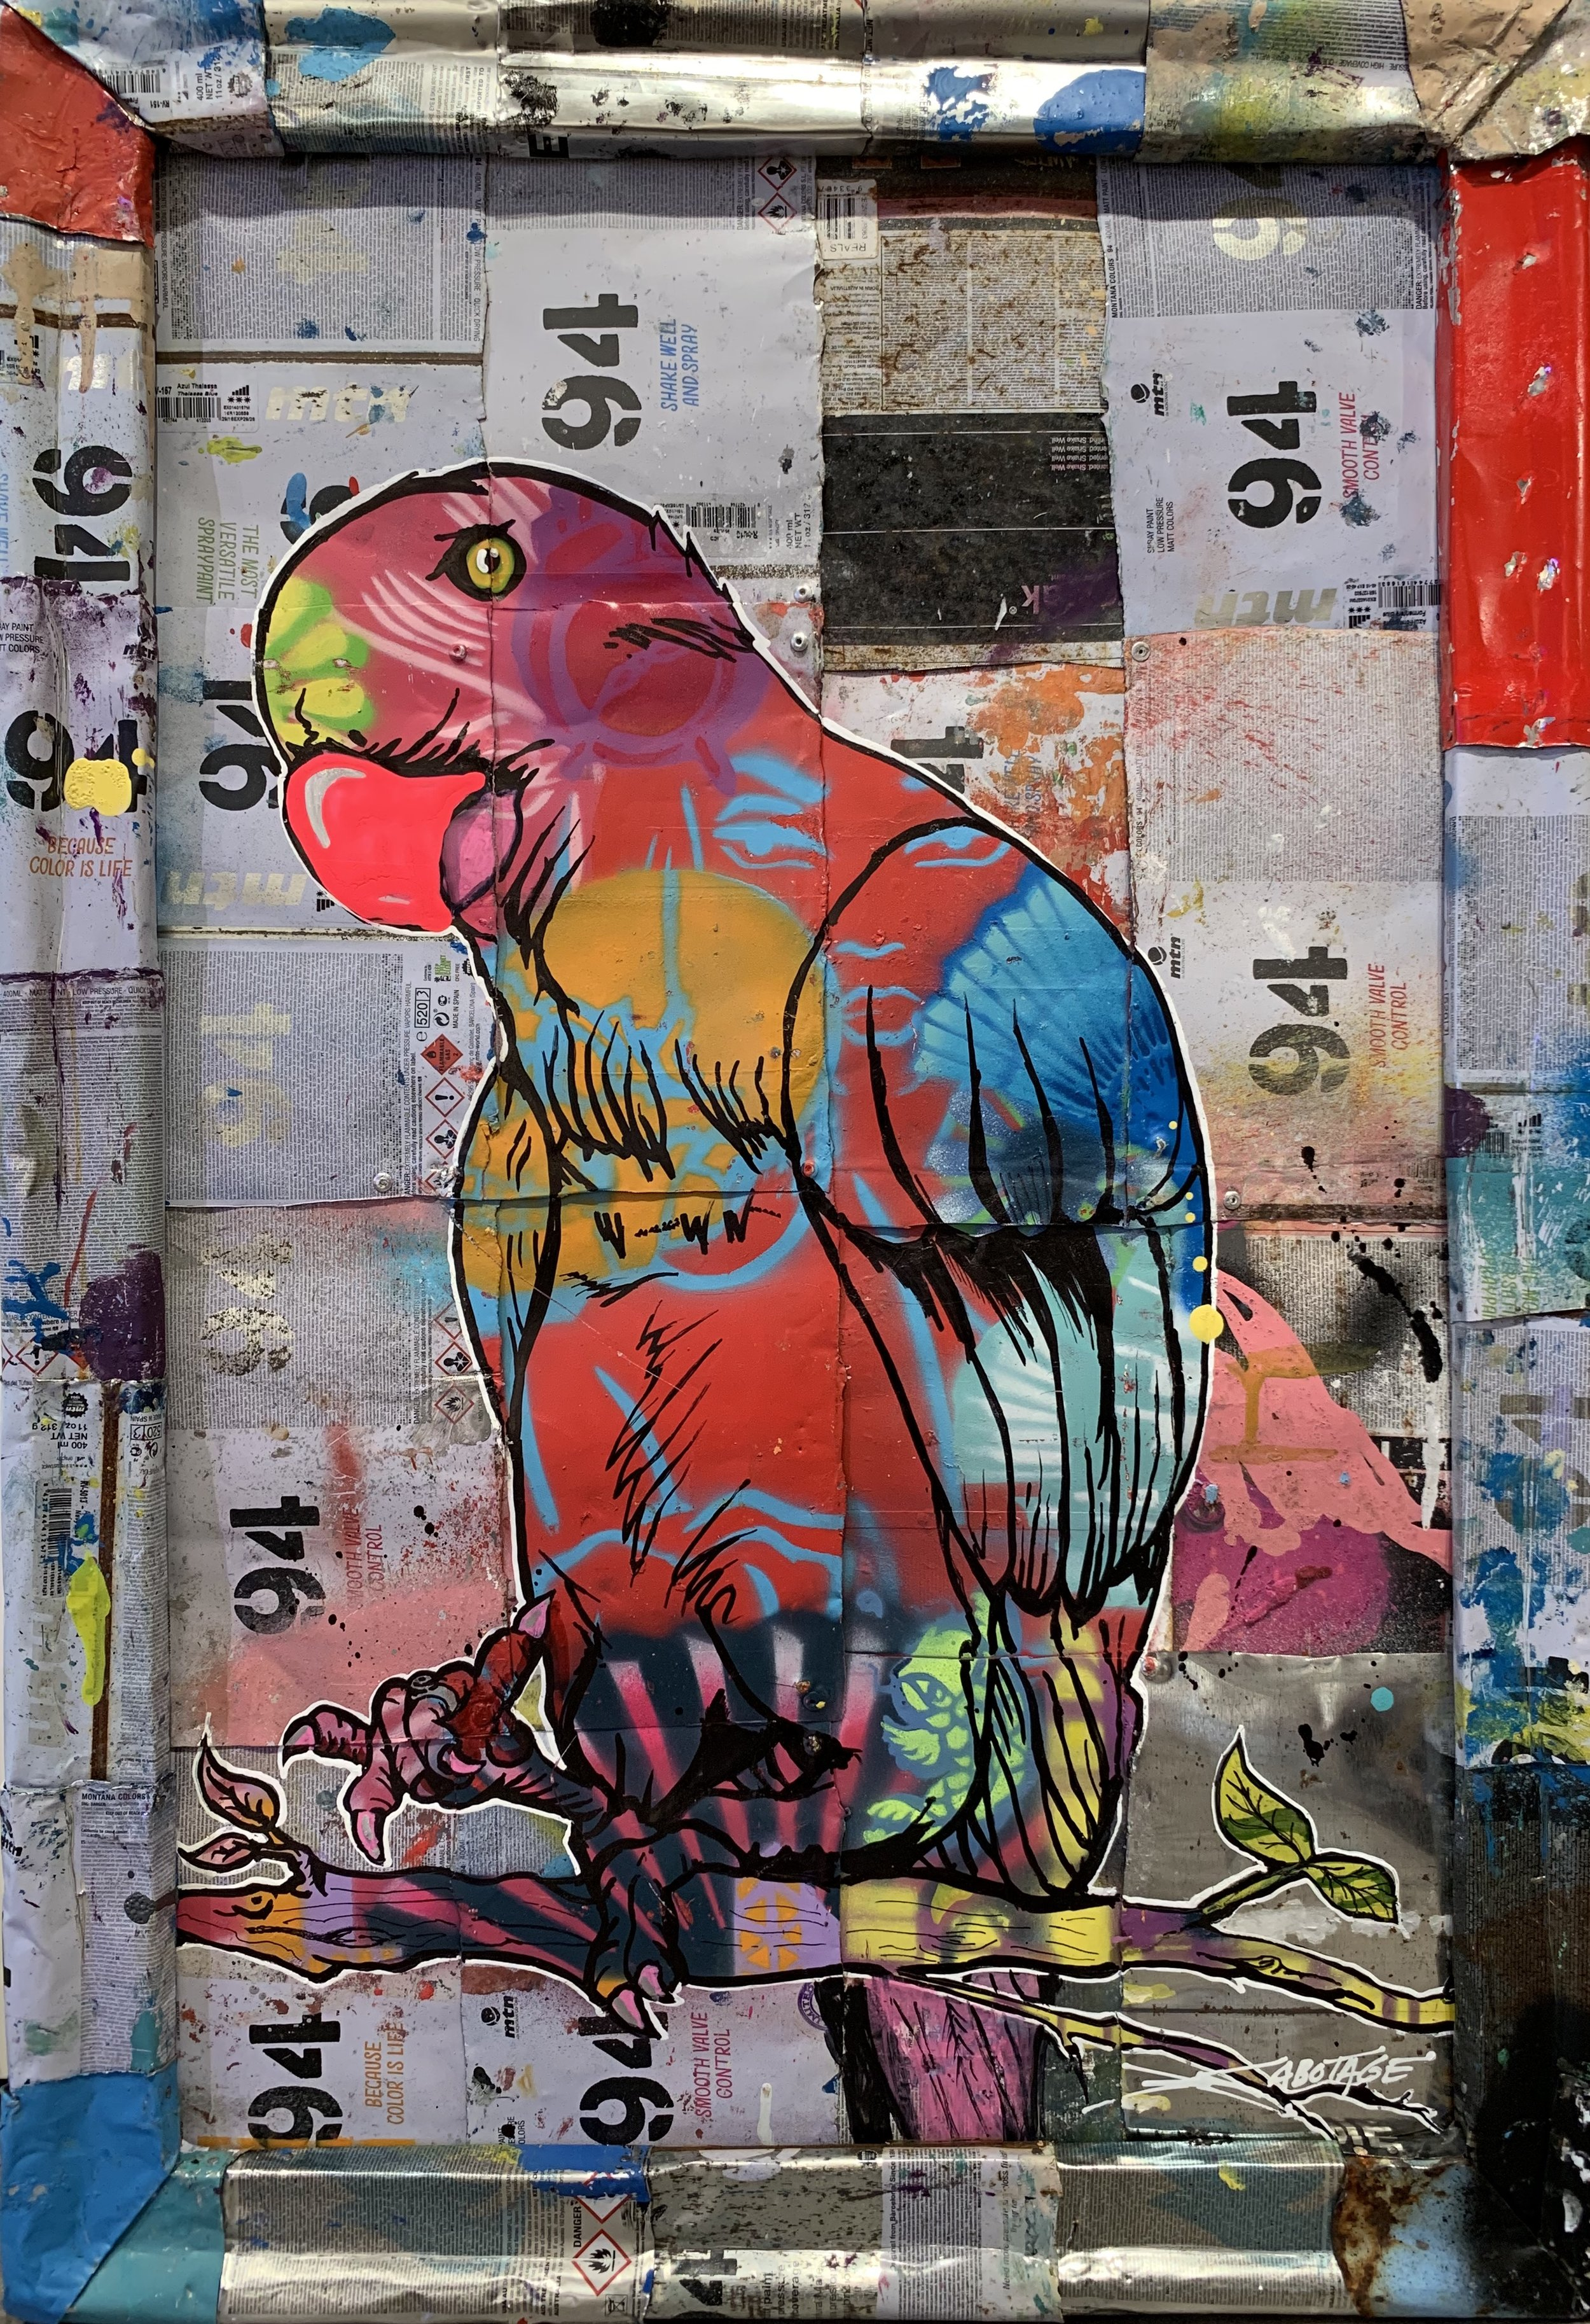 """Parrot"" Stencil Mixed Media Spray Paint and Graffiti Markers on deconstructed Can Background 78 x 54 cm 2018"